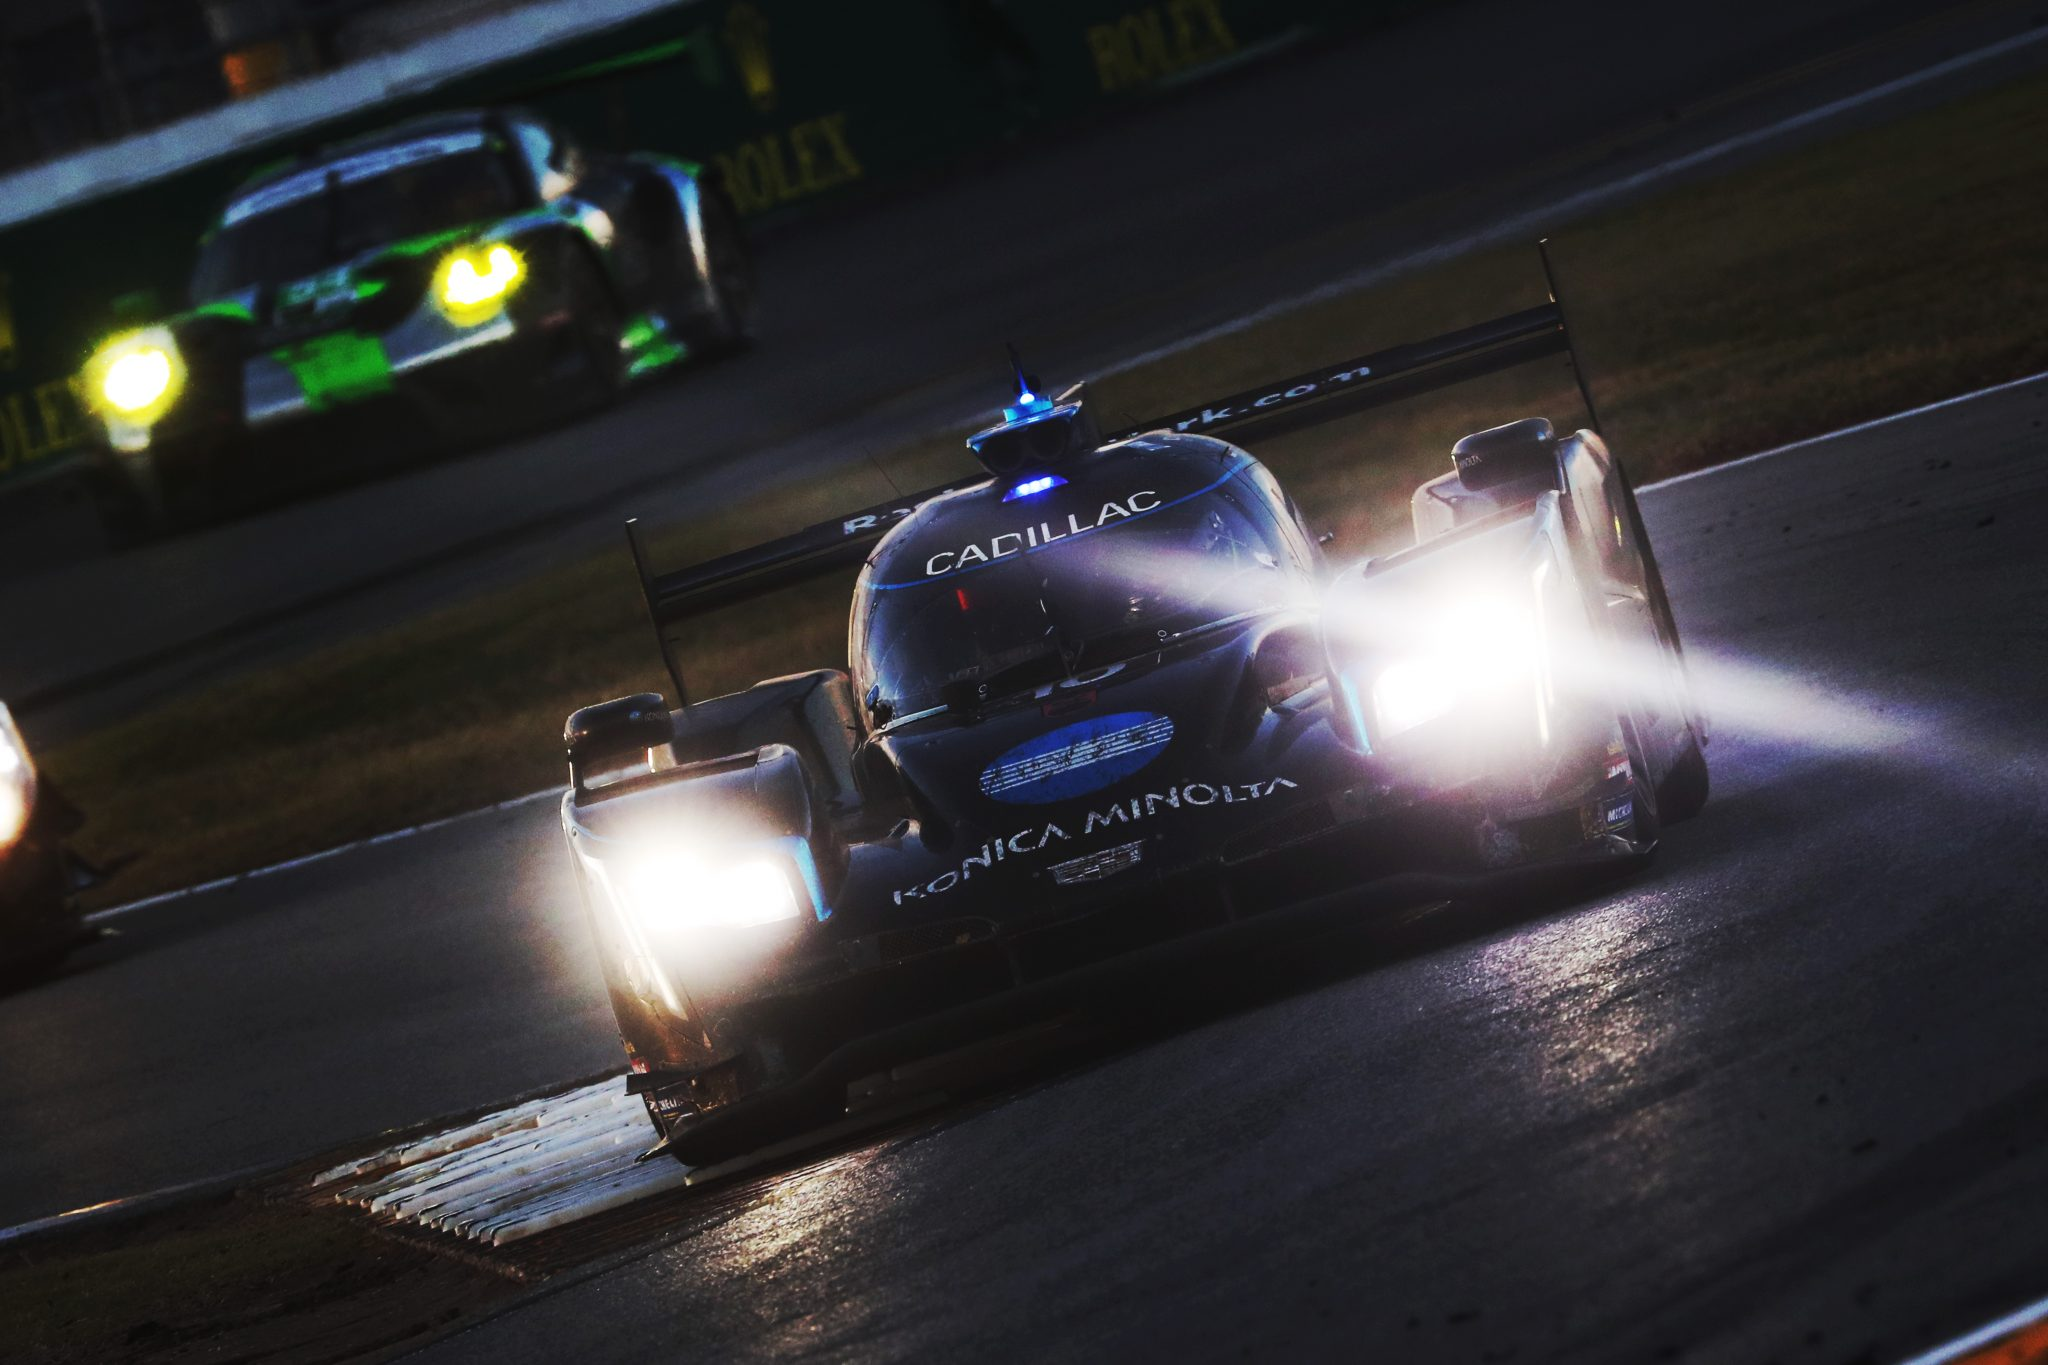 Renger shines in 'a team of superstars' to claim back-to-back Rolex 24 victories